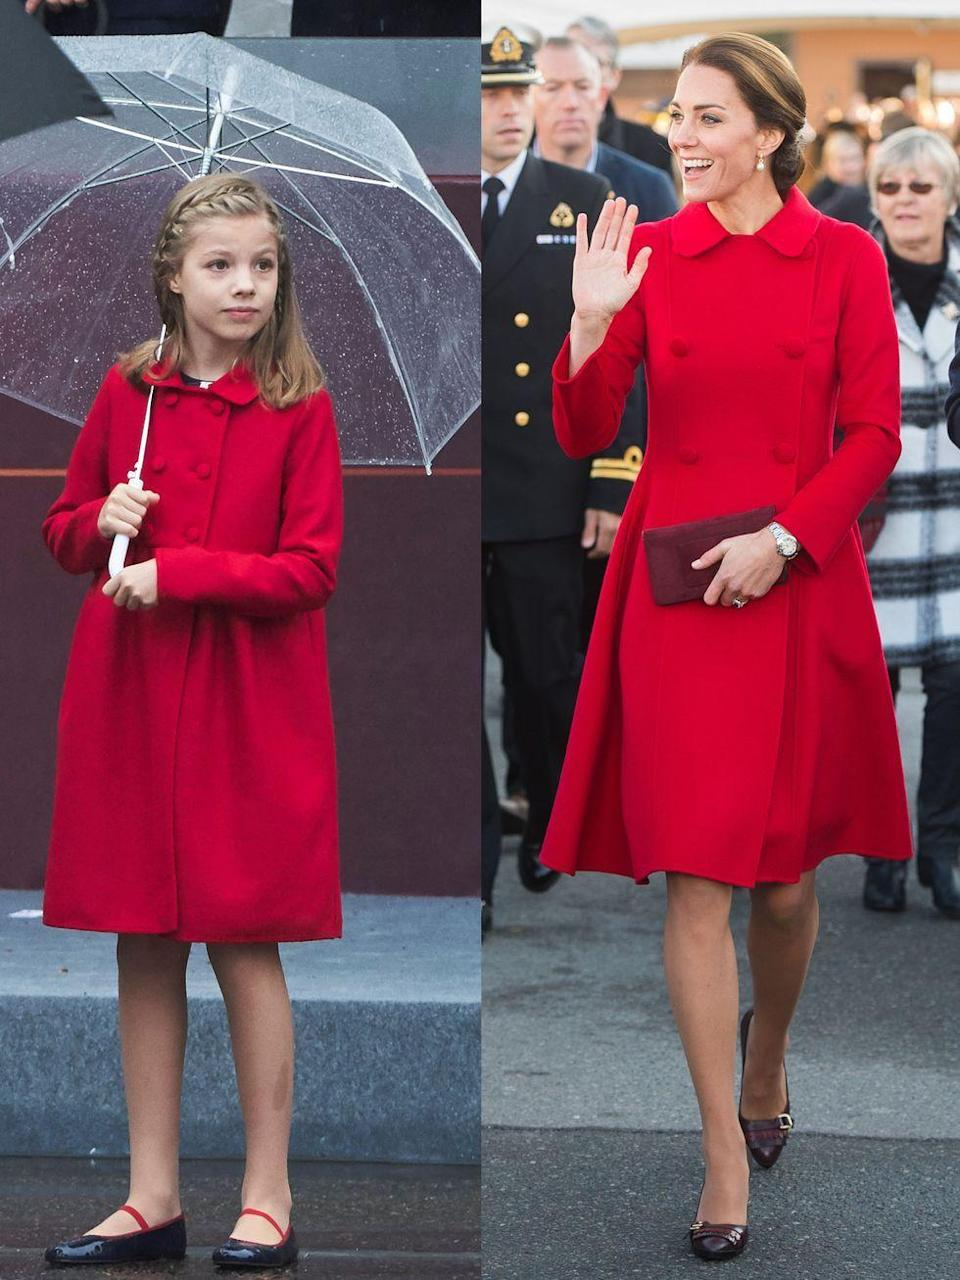 """<p><strong>Left: </strong>Princess Sofia attended Spain's National Day military parade on October 12, 2016 wearing a pint-sized red Carolina Herrera coat.</p><p><strong>Right: </strong>Just one month earlier, Catherine, Duchess of Cambridge was spotted wearing the adult version while on a <a href=""""https://www.townandcountrymag.com/style/fashion-trends/g2877/kate-middleton-royal-canada-tour-outfits/"""" rel=""""nofollow noopener"""" target=""""_blank"""" data-ylk=""""slk:royal tour of Canada"""" class=""""link rapid-noclick-resp"""">royal tour of Canada</a>.<br></p>"""